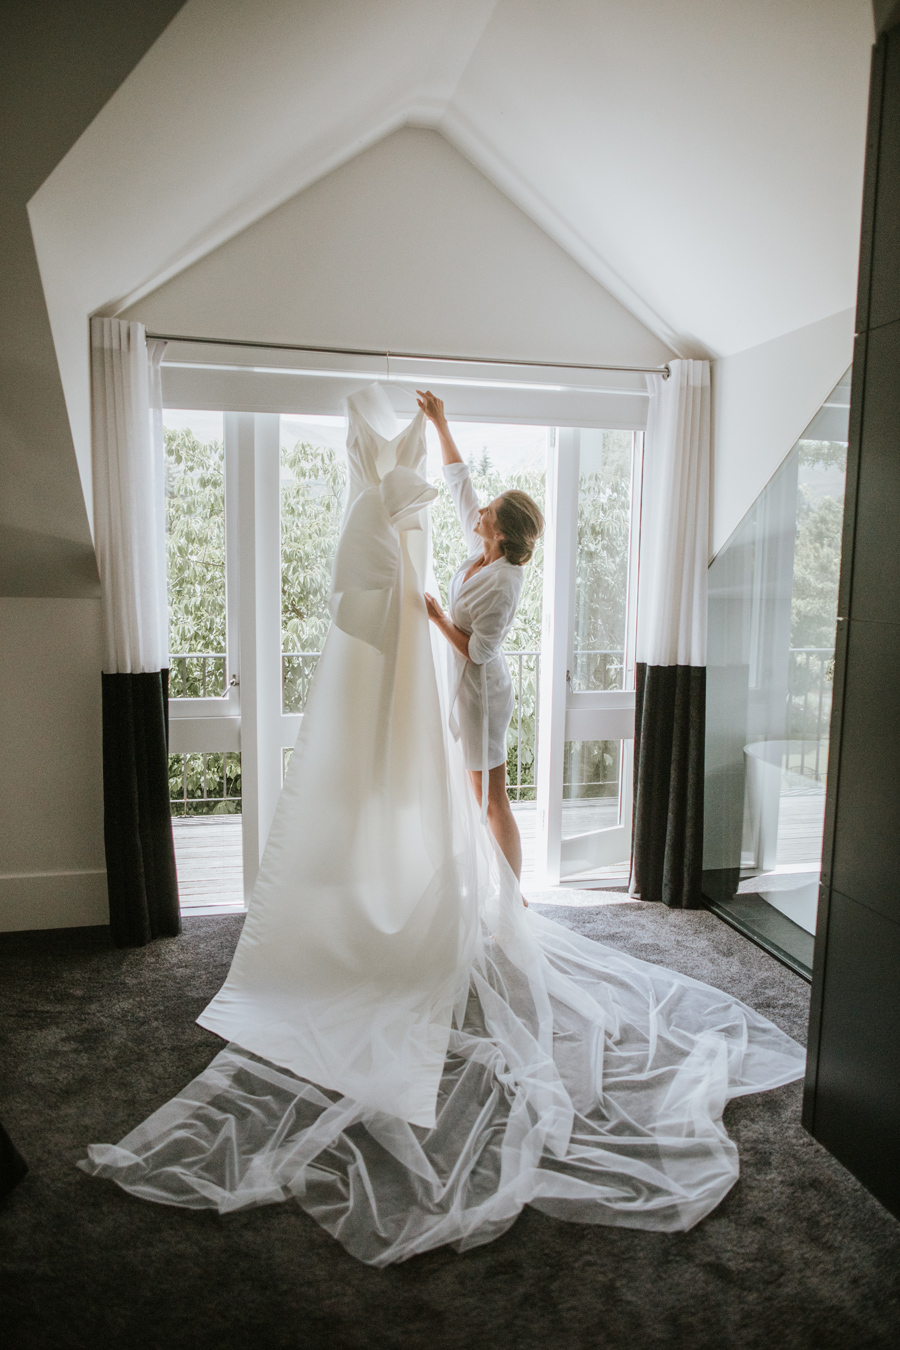 A bride reaches for her wedding gown on her Queenstown Wedding day. With photography by Alpine Image Company